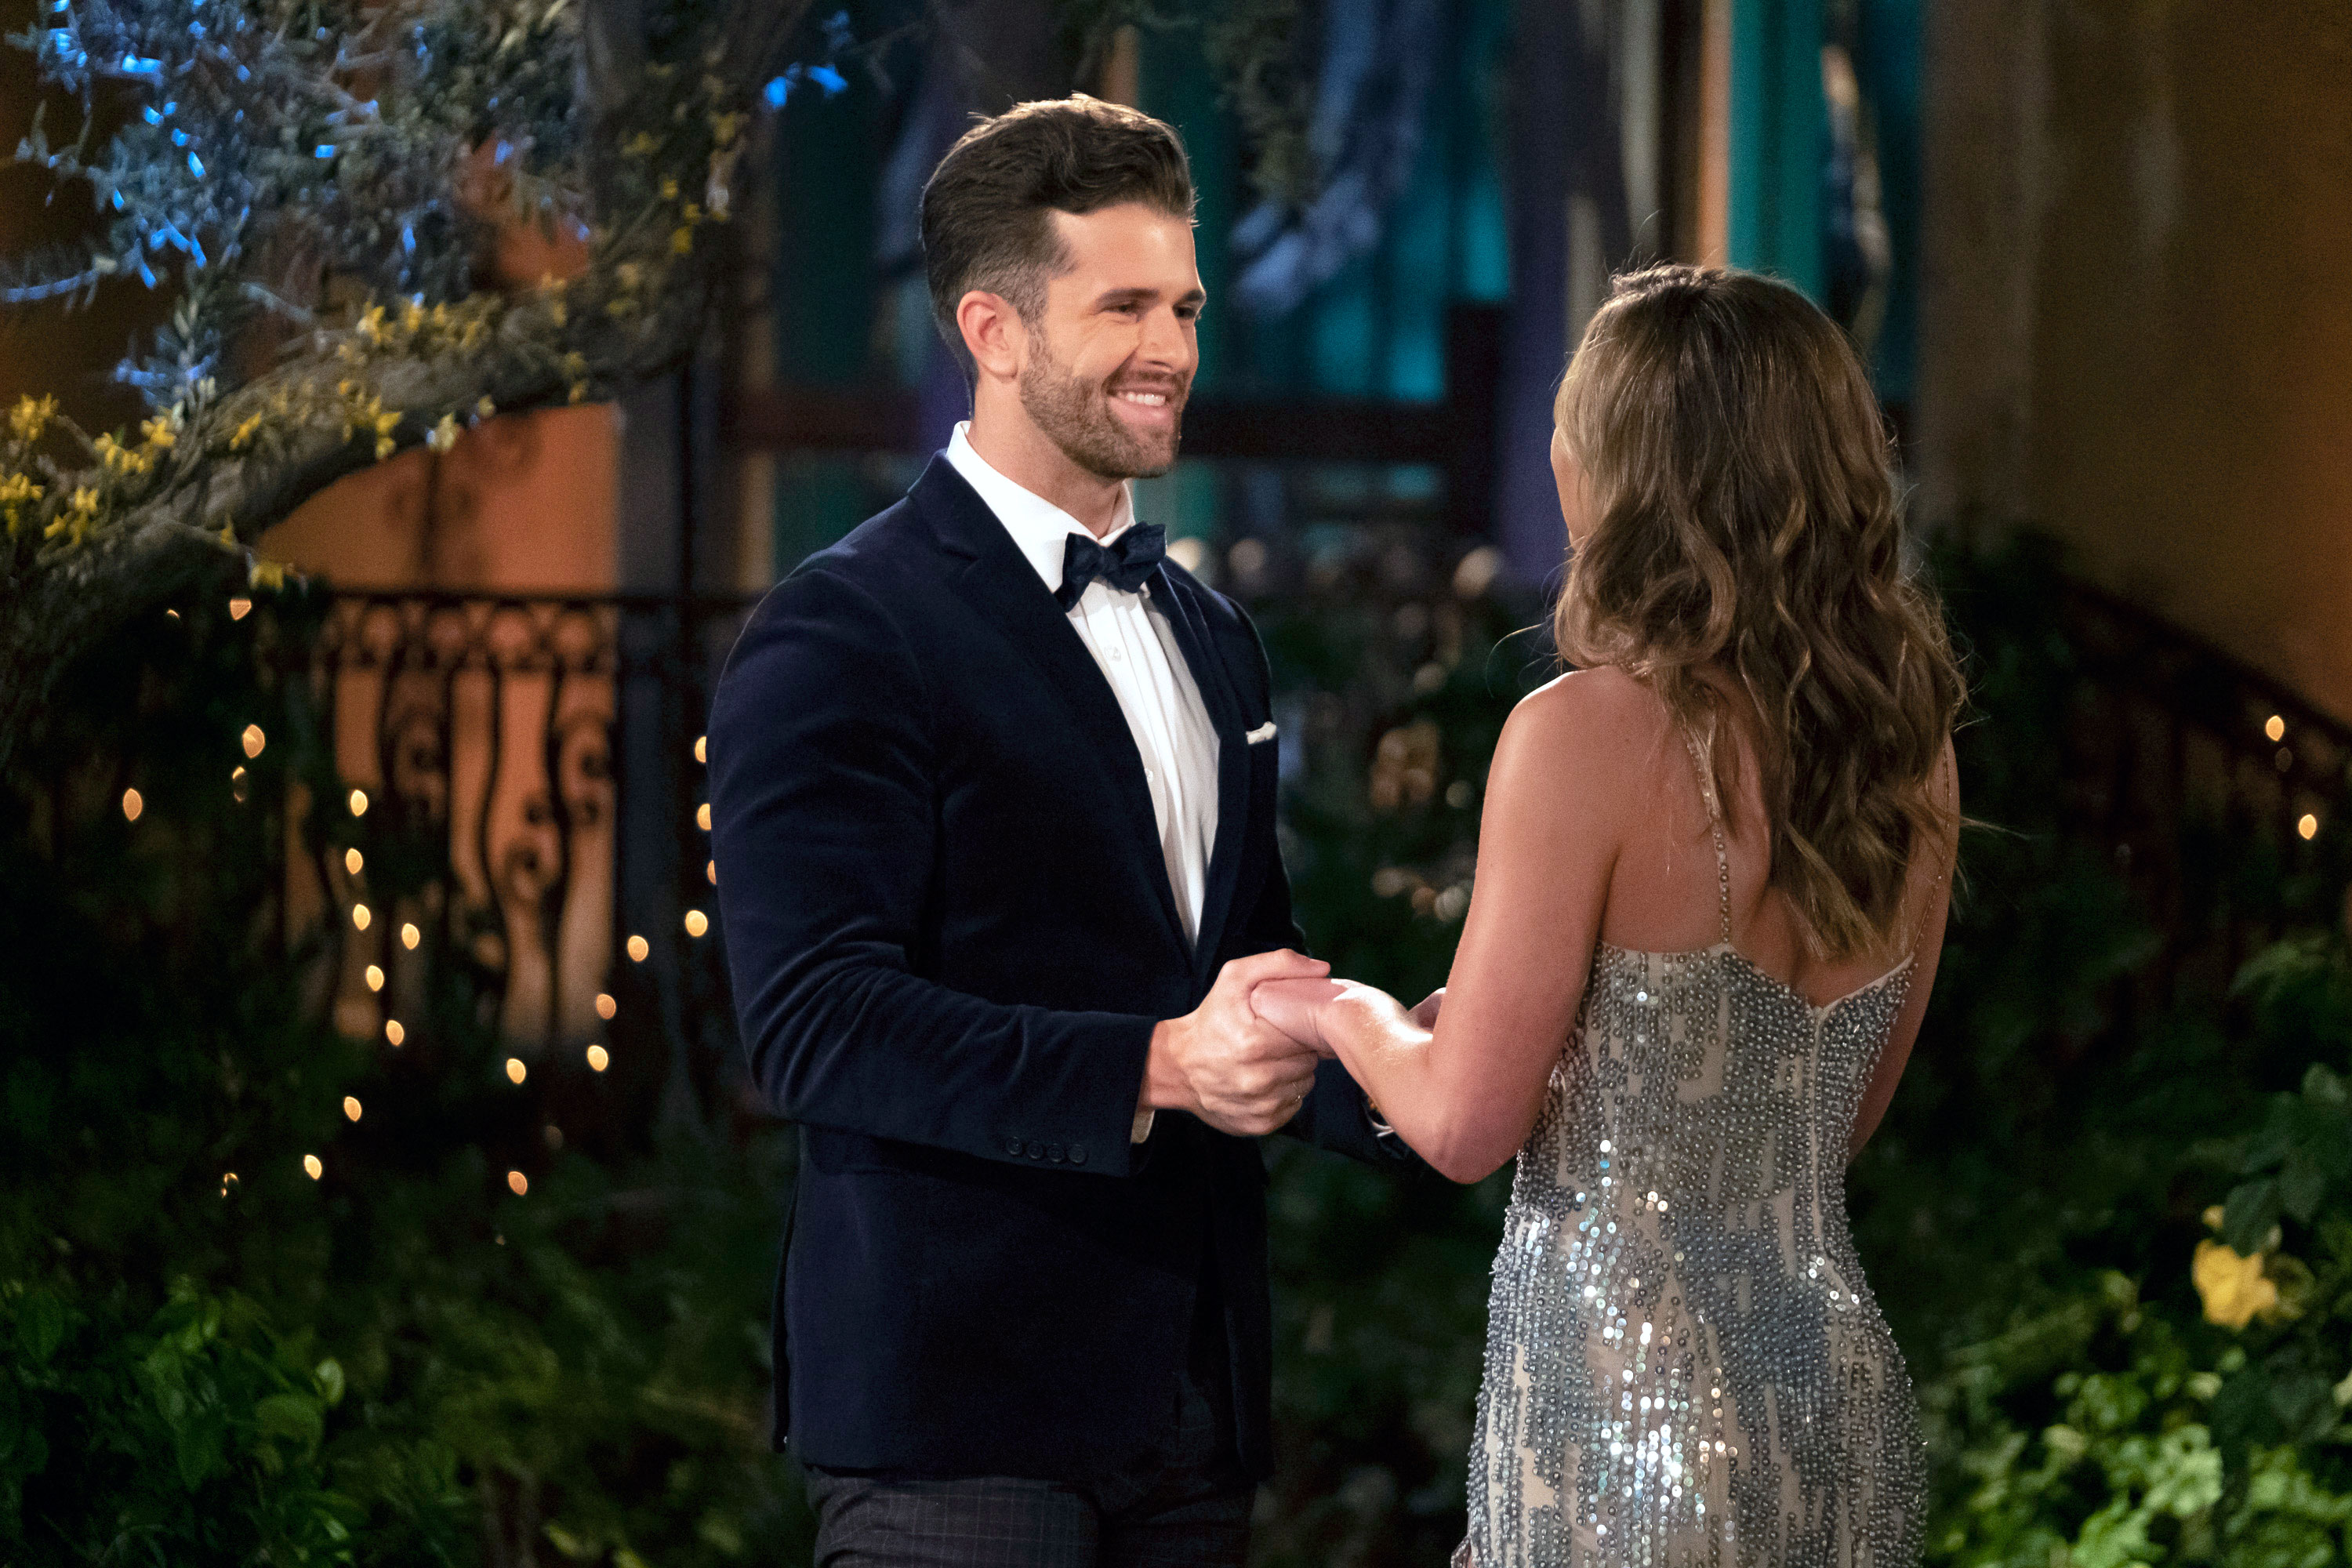 Jed Bachelorette Hannah Brown Admits She 'F--ked' a Contestant Twice 'in a Windmill'